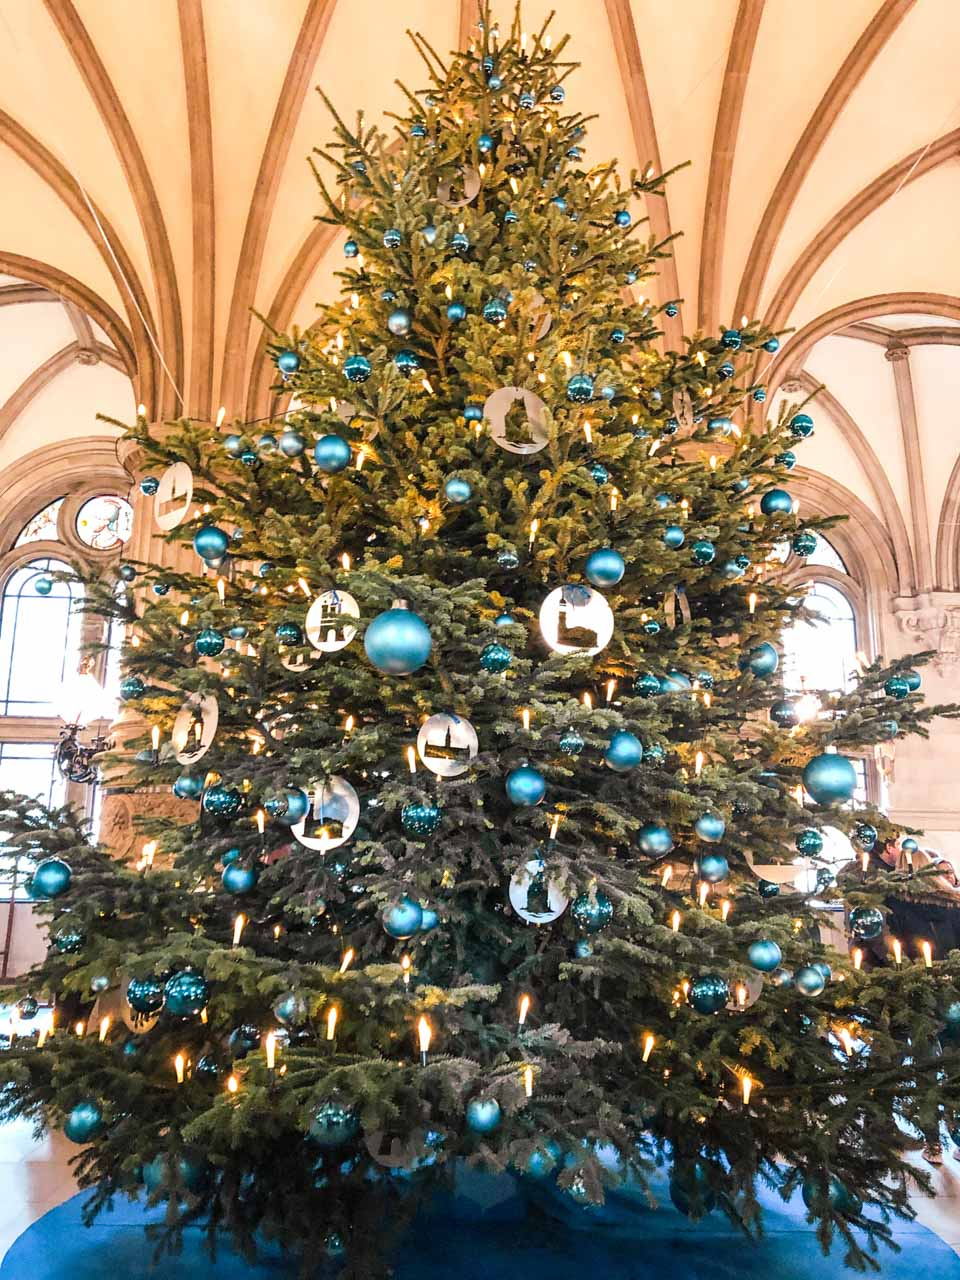 A Christmas tree inside the City Hall building in Hamburg